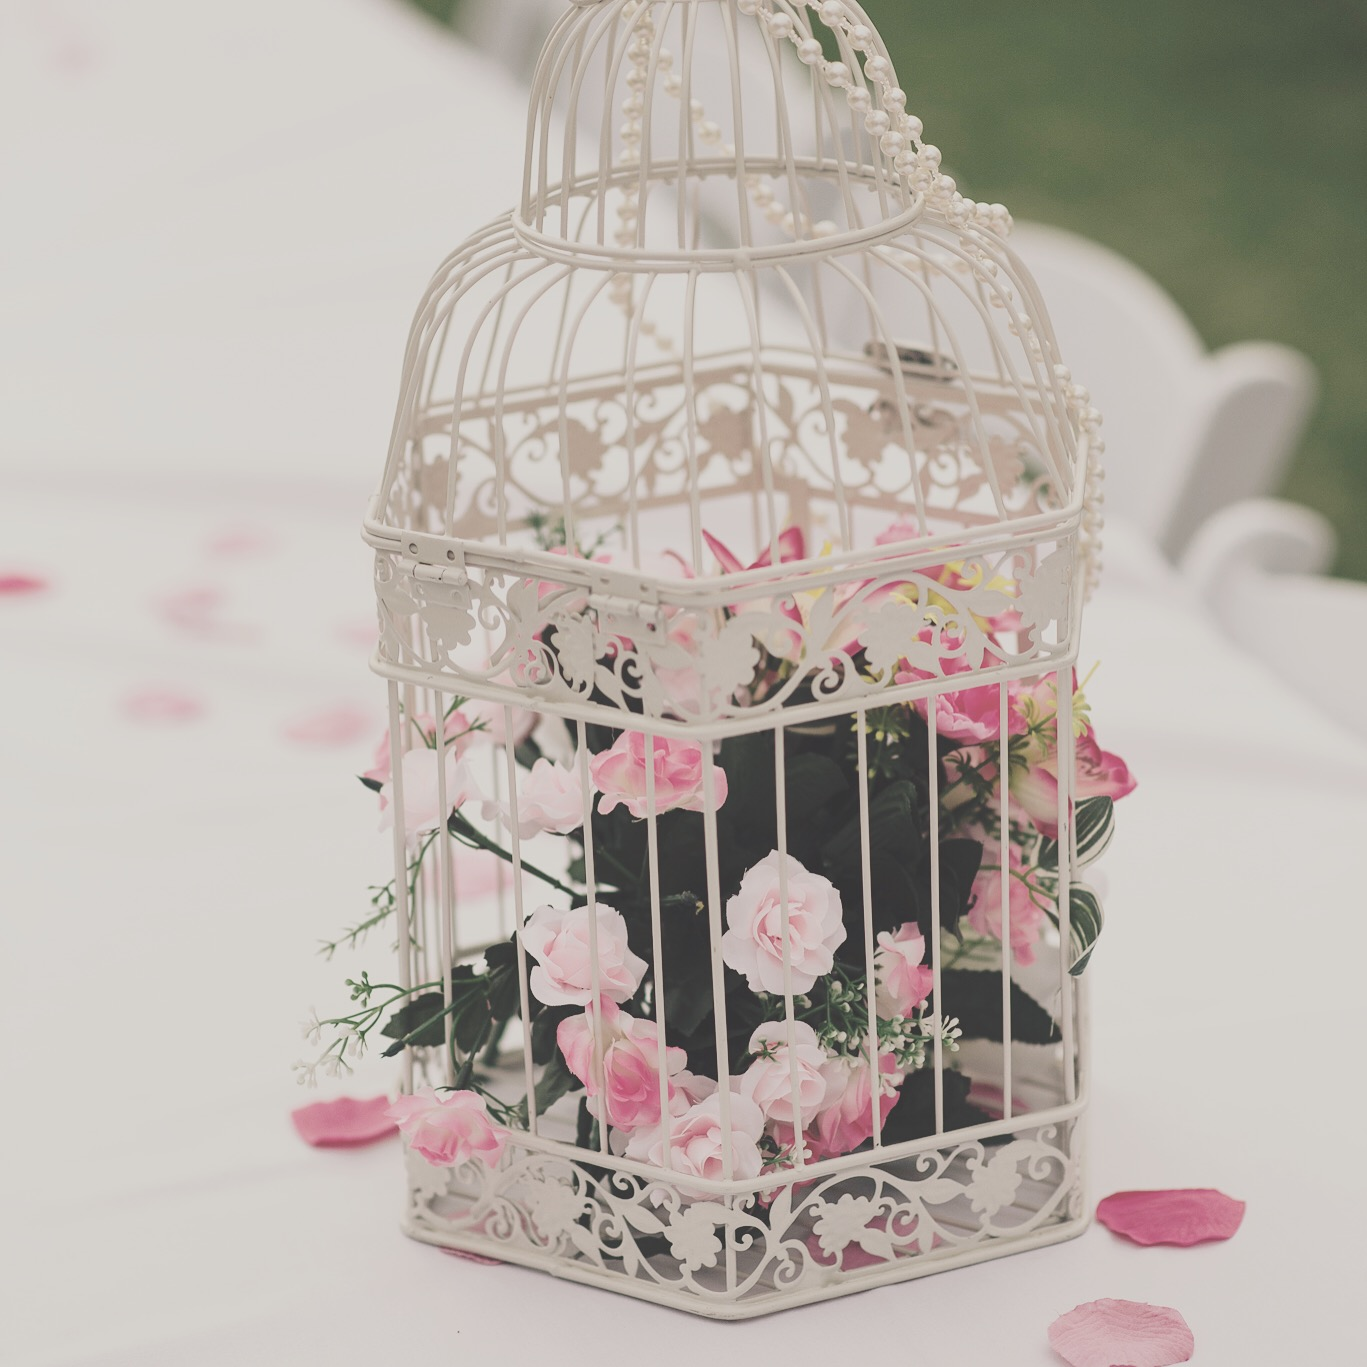 Wishing Wells & Bird Cages